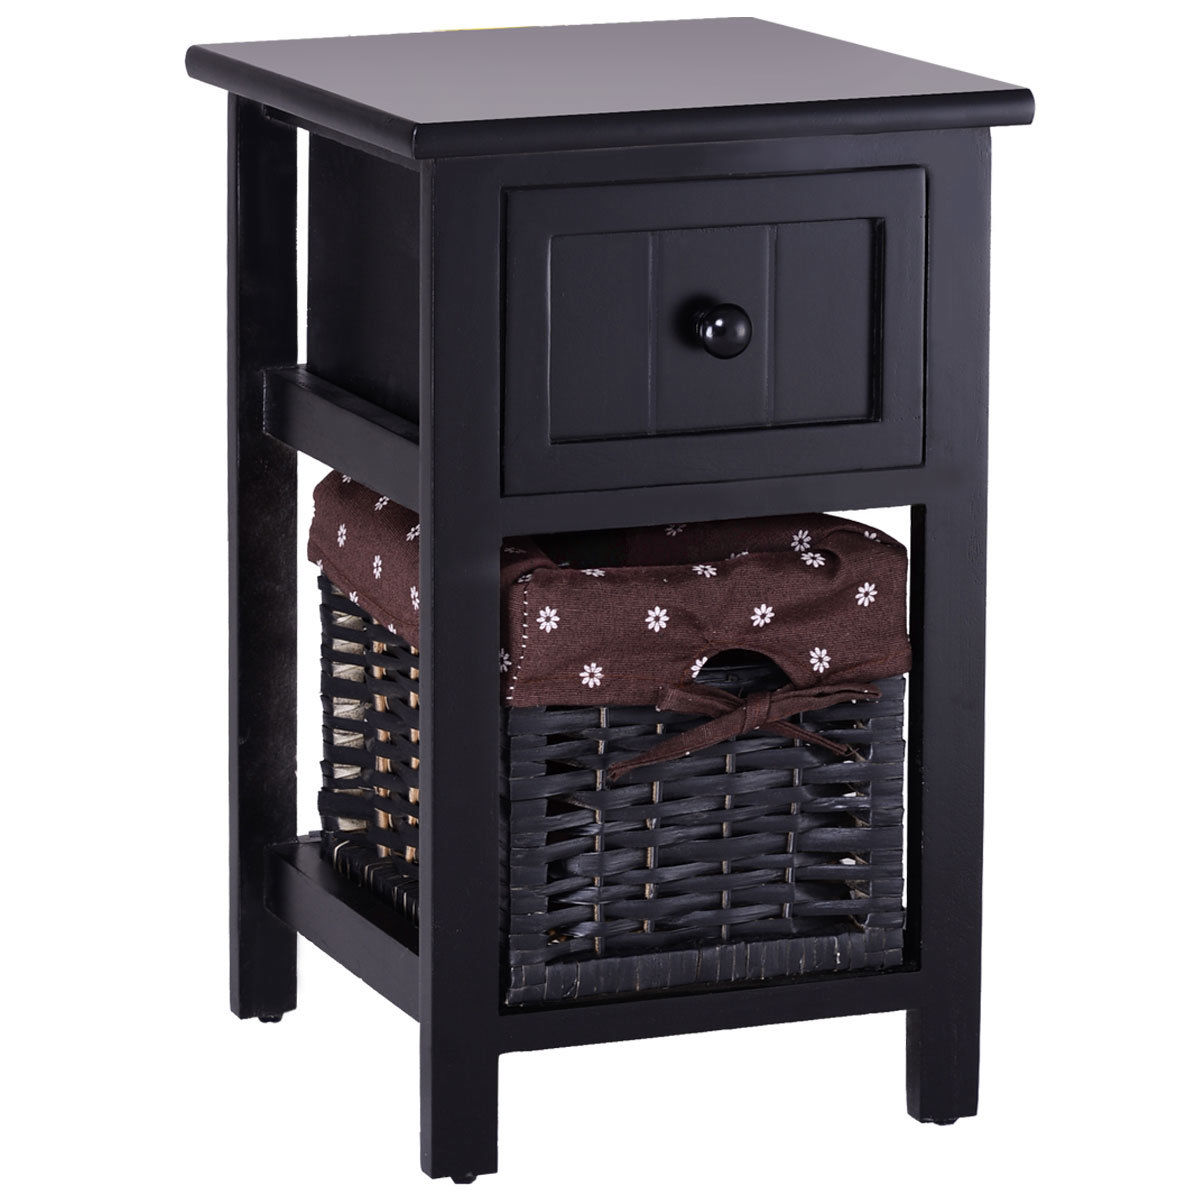 Gymax 2 Tier Nightstand 1 Drawer Bedside End Table Organizer Wood W/Basket Black